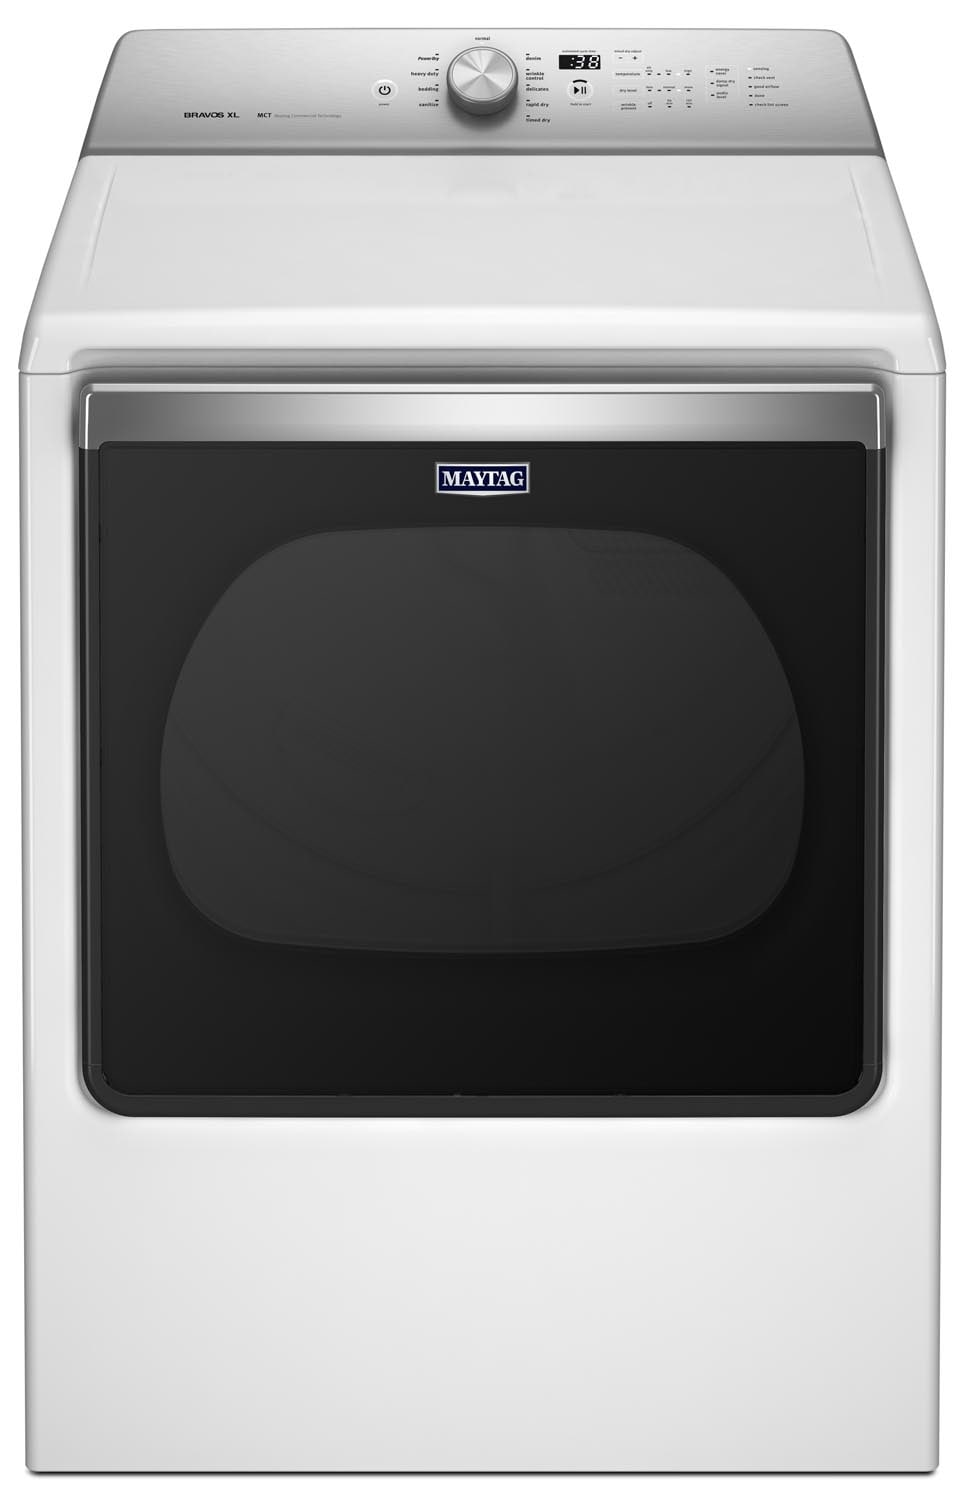 Maytag Gas Dryer (8.8 Cu. Ft.) MGDB835DW